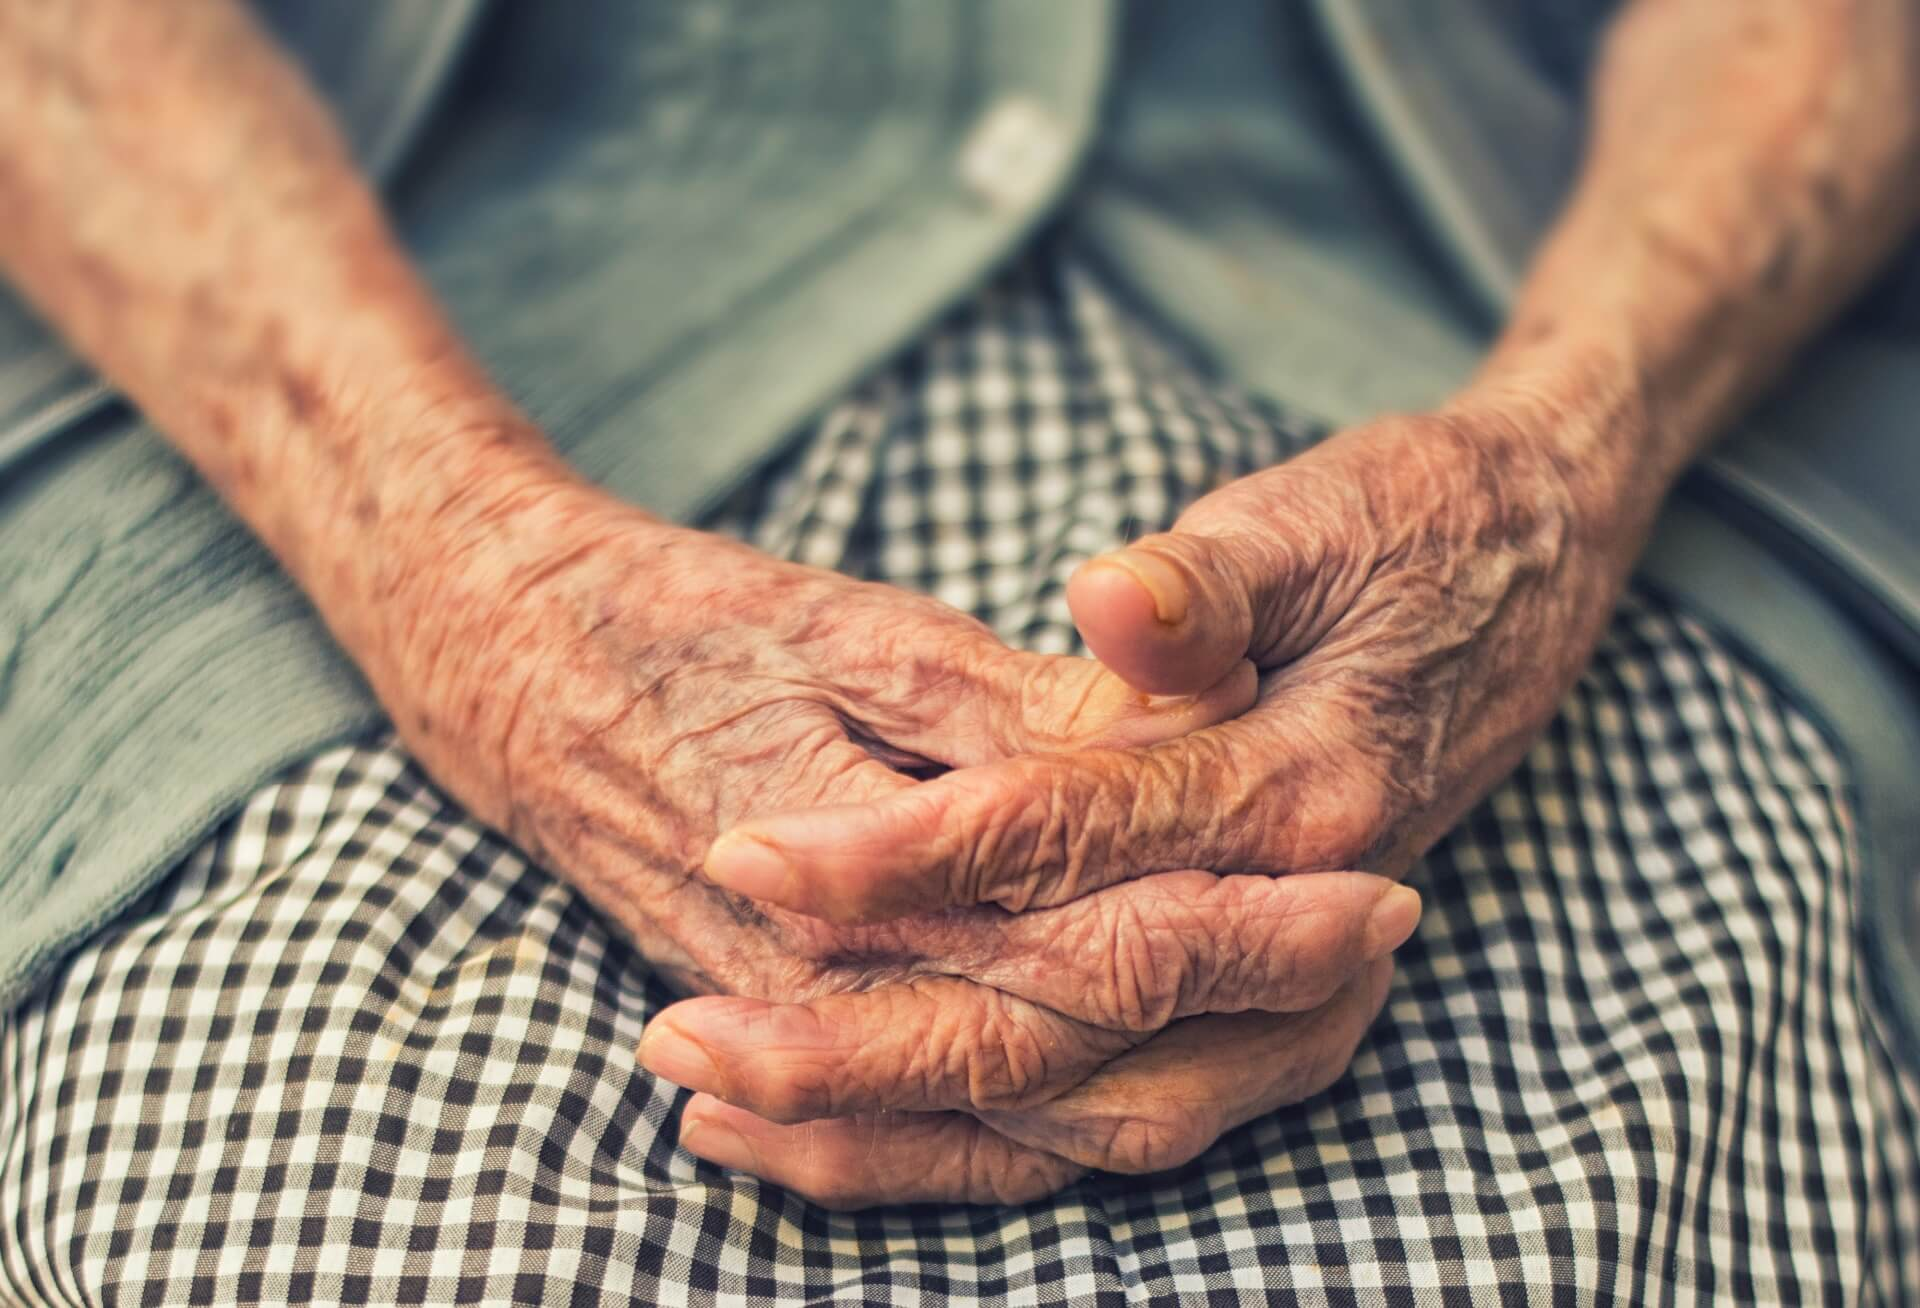 week-15-everything-i-needed-to-know-about-the-declining-young-and-growing-elderly-population-in-japan.jpg